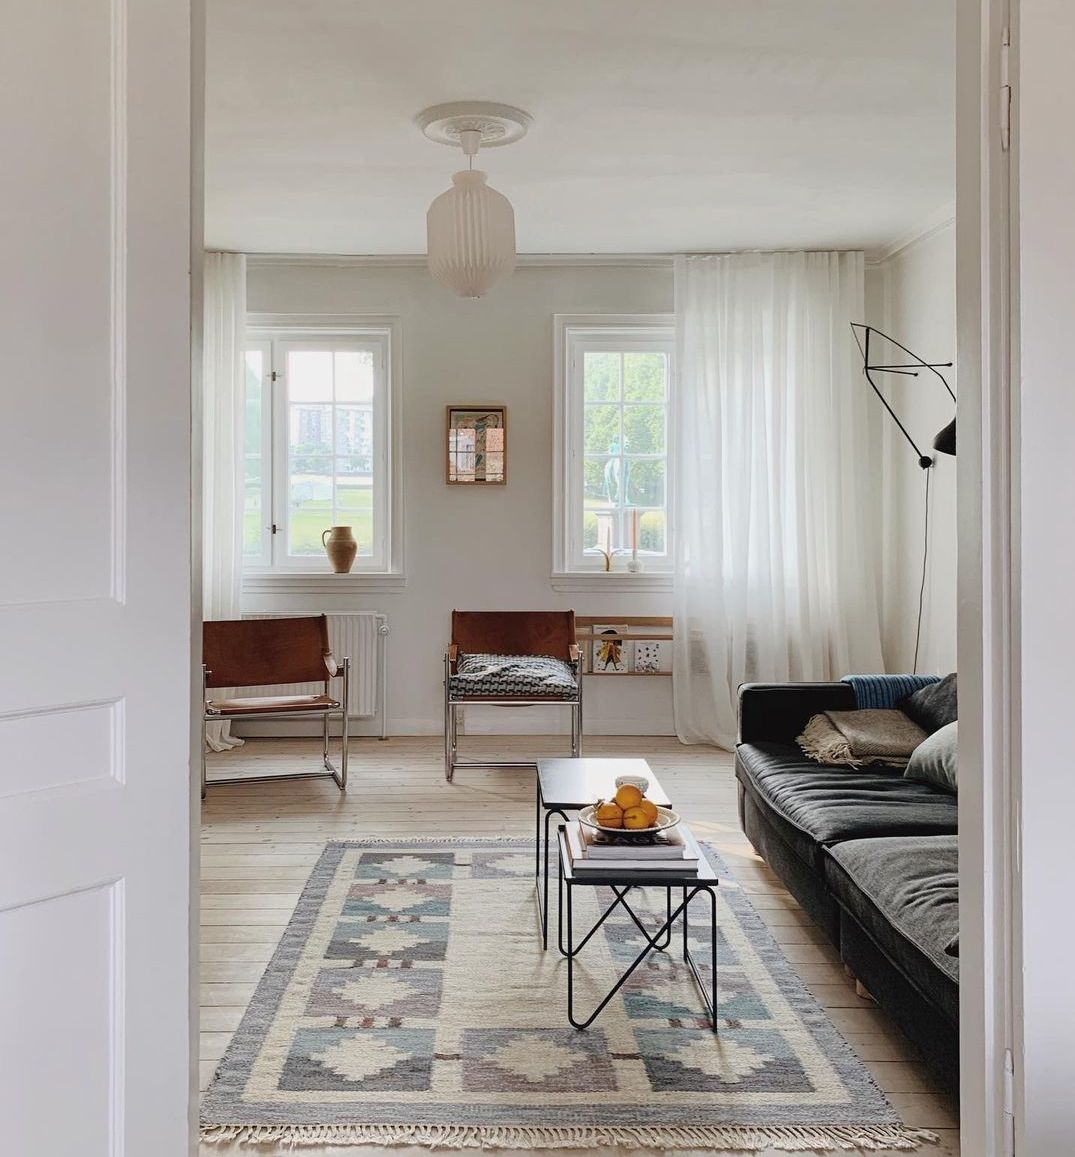 Femte Til Venstre: A Danish Couple's Thoughtfully Appointed 1927 Townhouse in Copenhagen